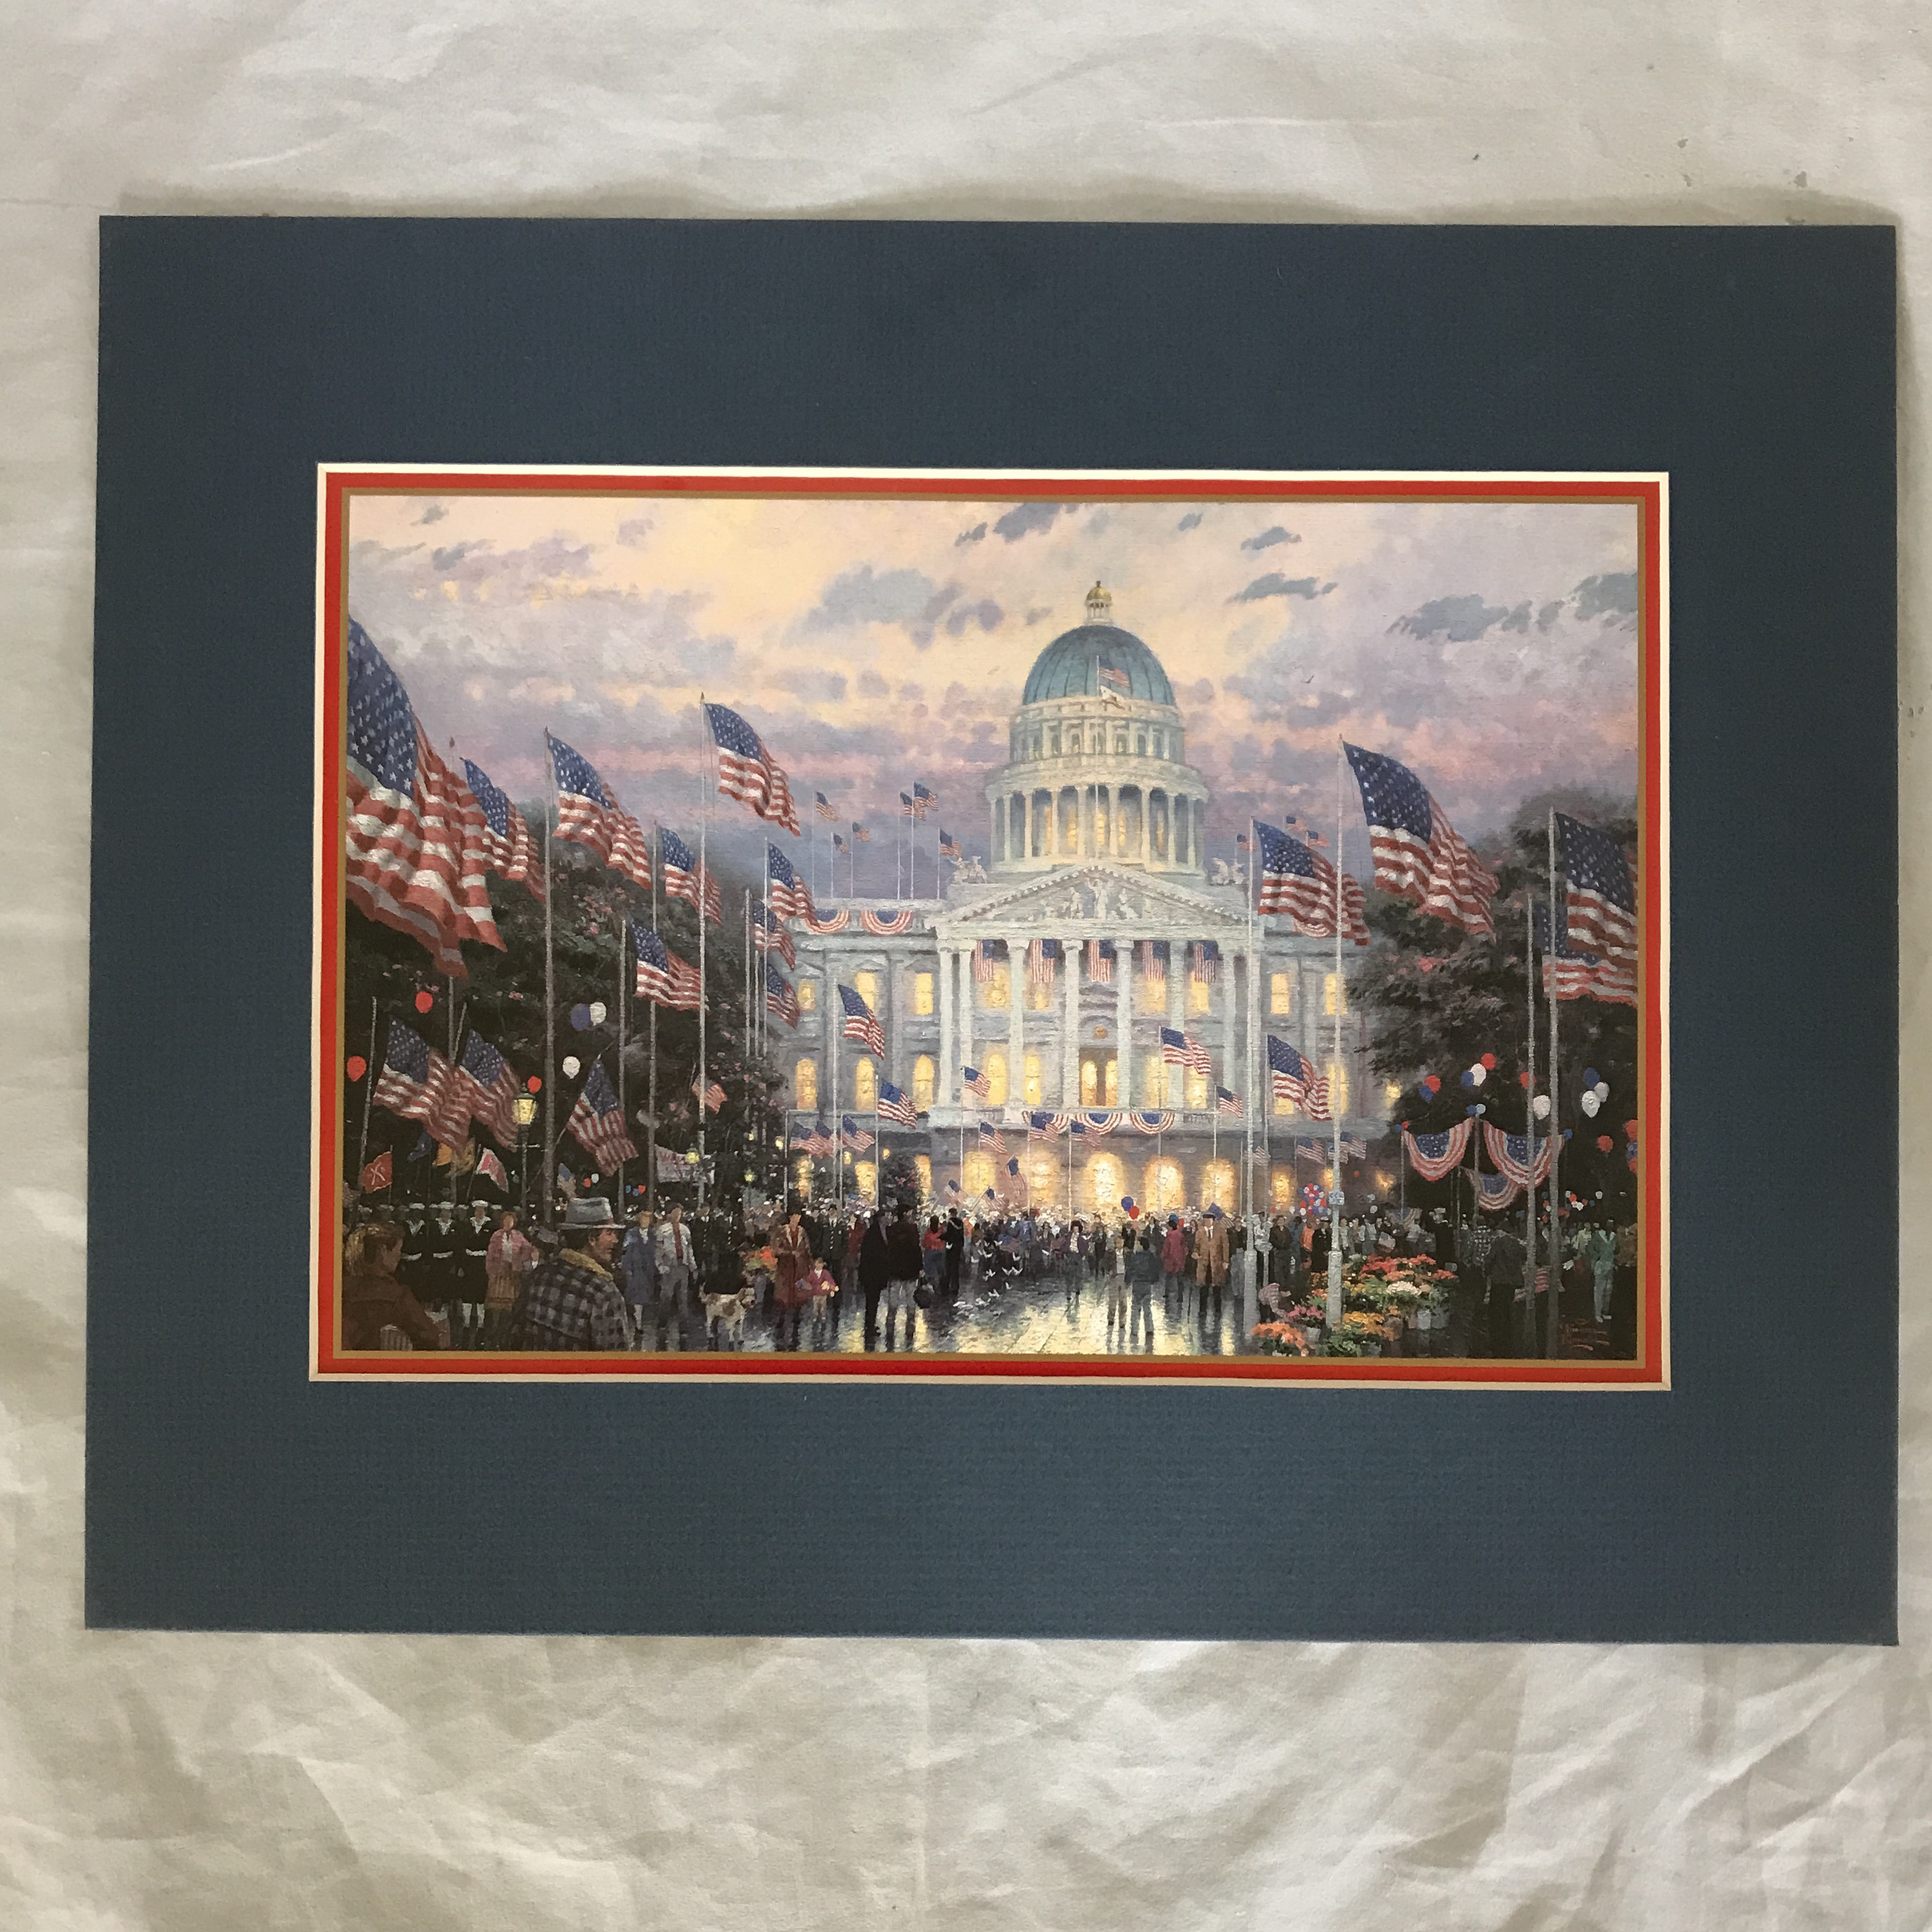 Authentic U201cFlags Over The Capitolu201d Thomas Kinkade Print For Sale   Image 5  Of